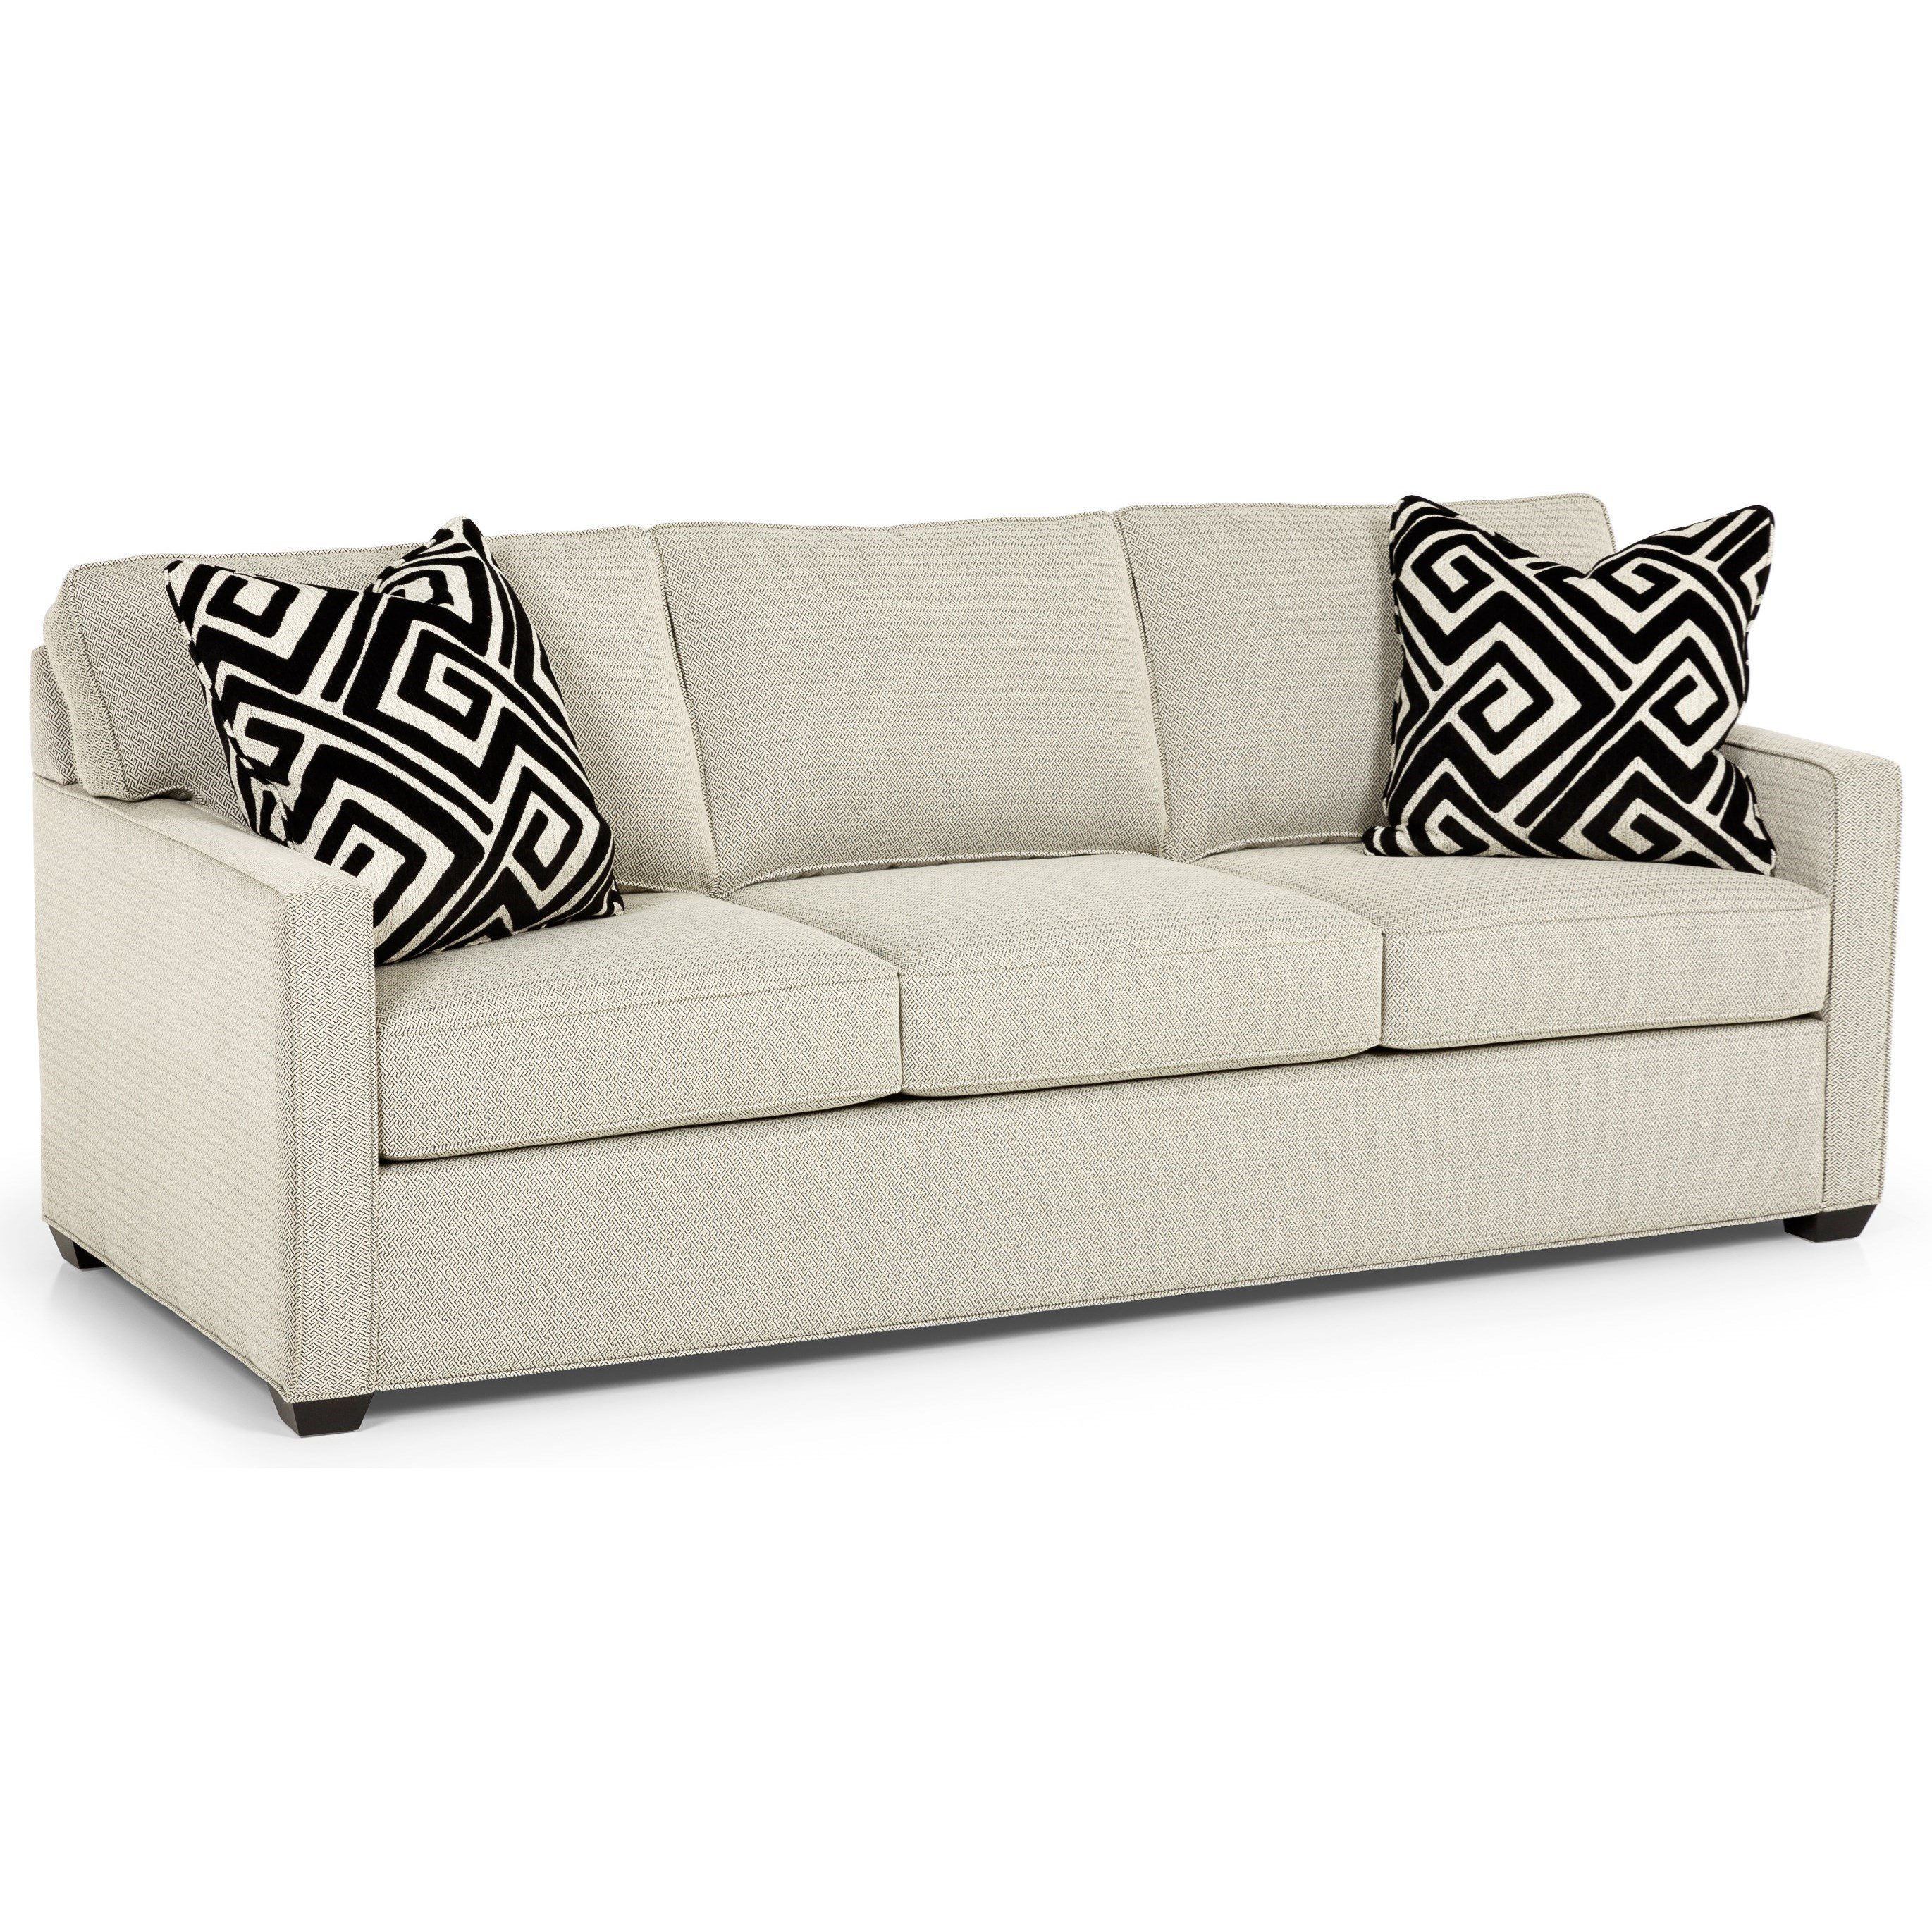 287 Sofa by Stanton at Wilson's Furniture